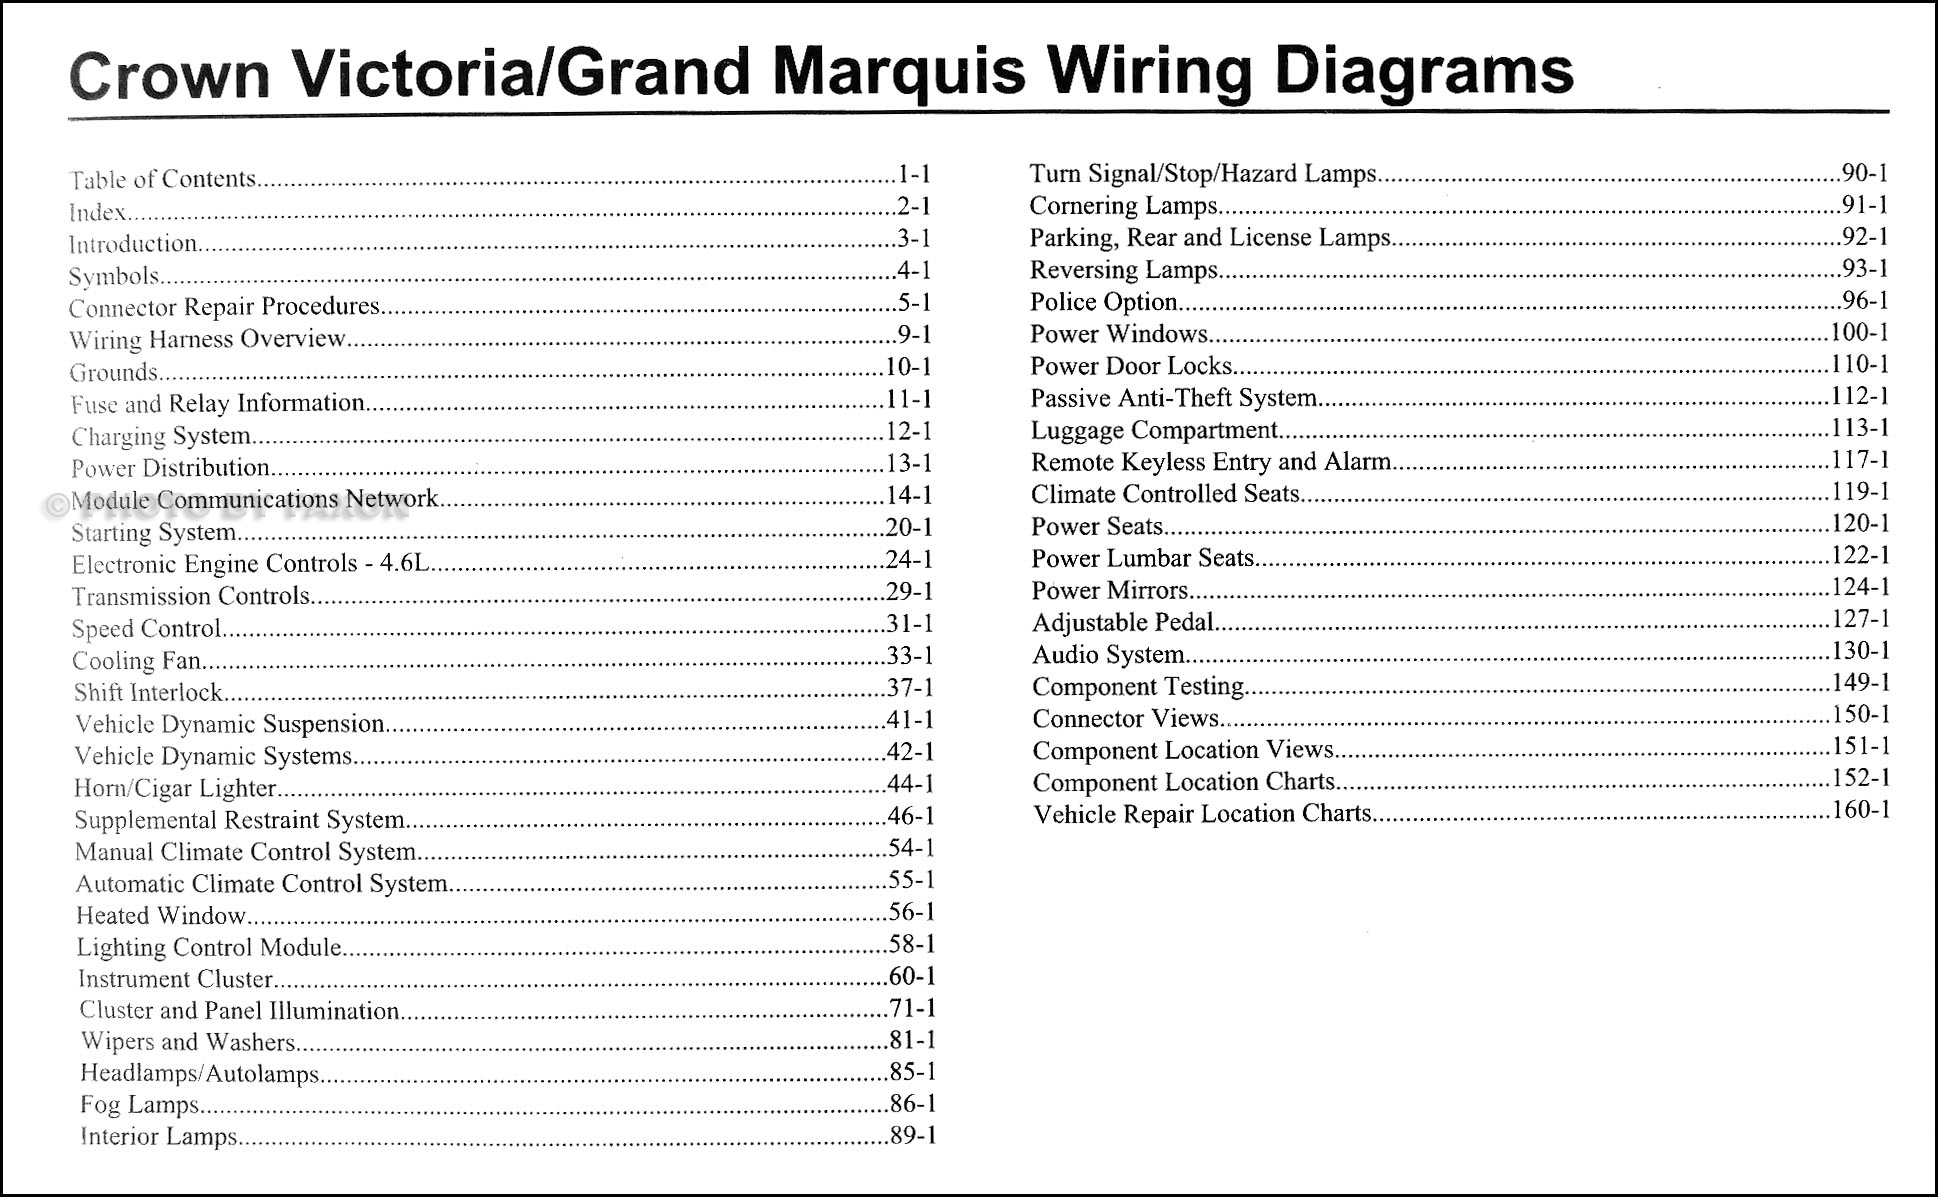 2009FordCrownVictoriaOWD TOC 2009 crown victoria & grand marquis original wiring diagram manual 2000 mercury grand marquis wiring diagram at bayanpartner.co